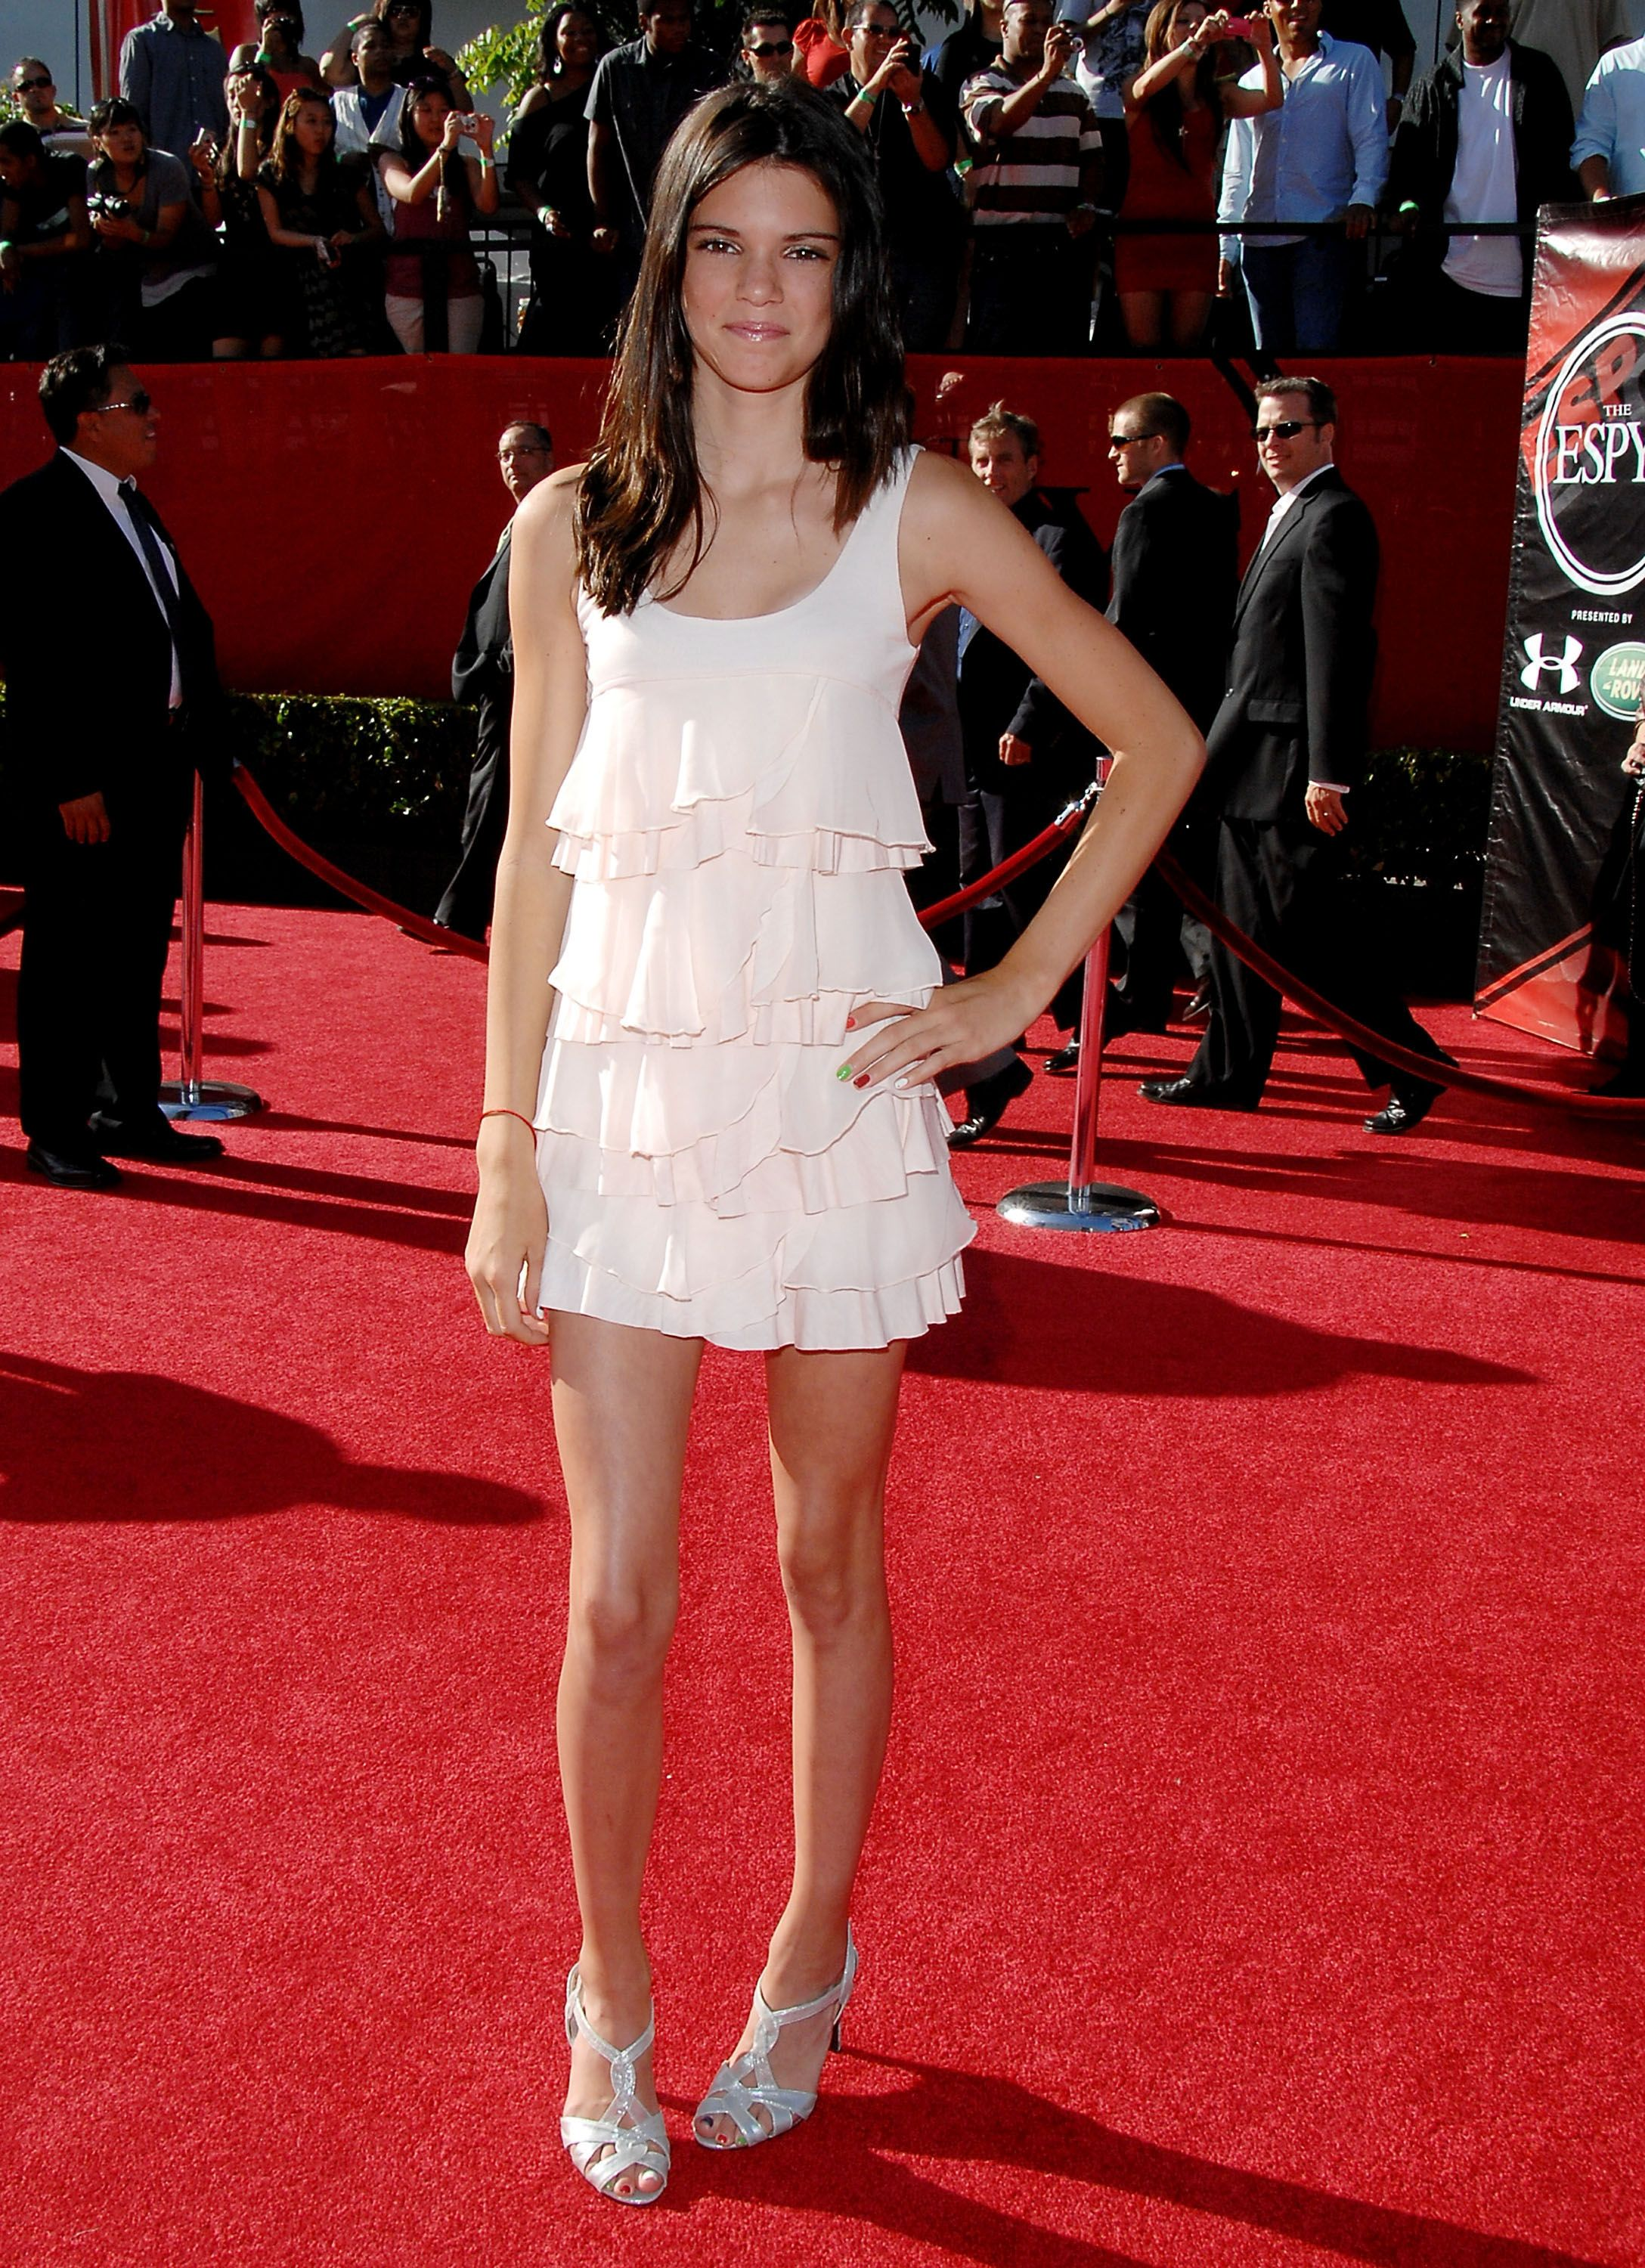 Download Kendall Jenner Red Carpet White Dress Background